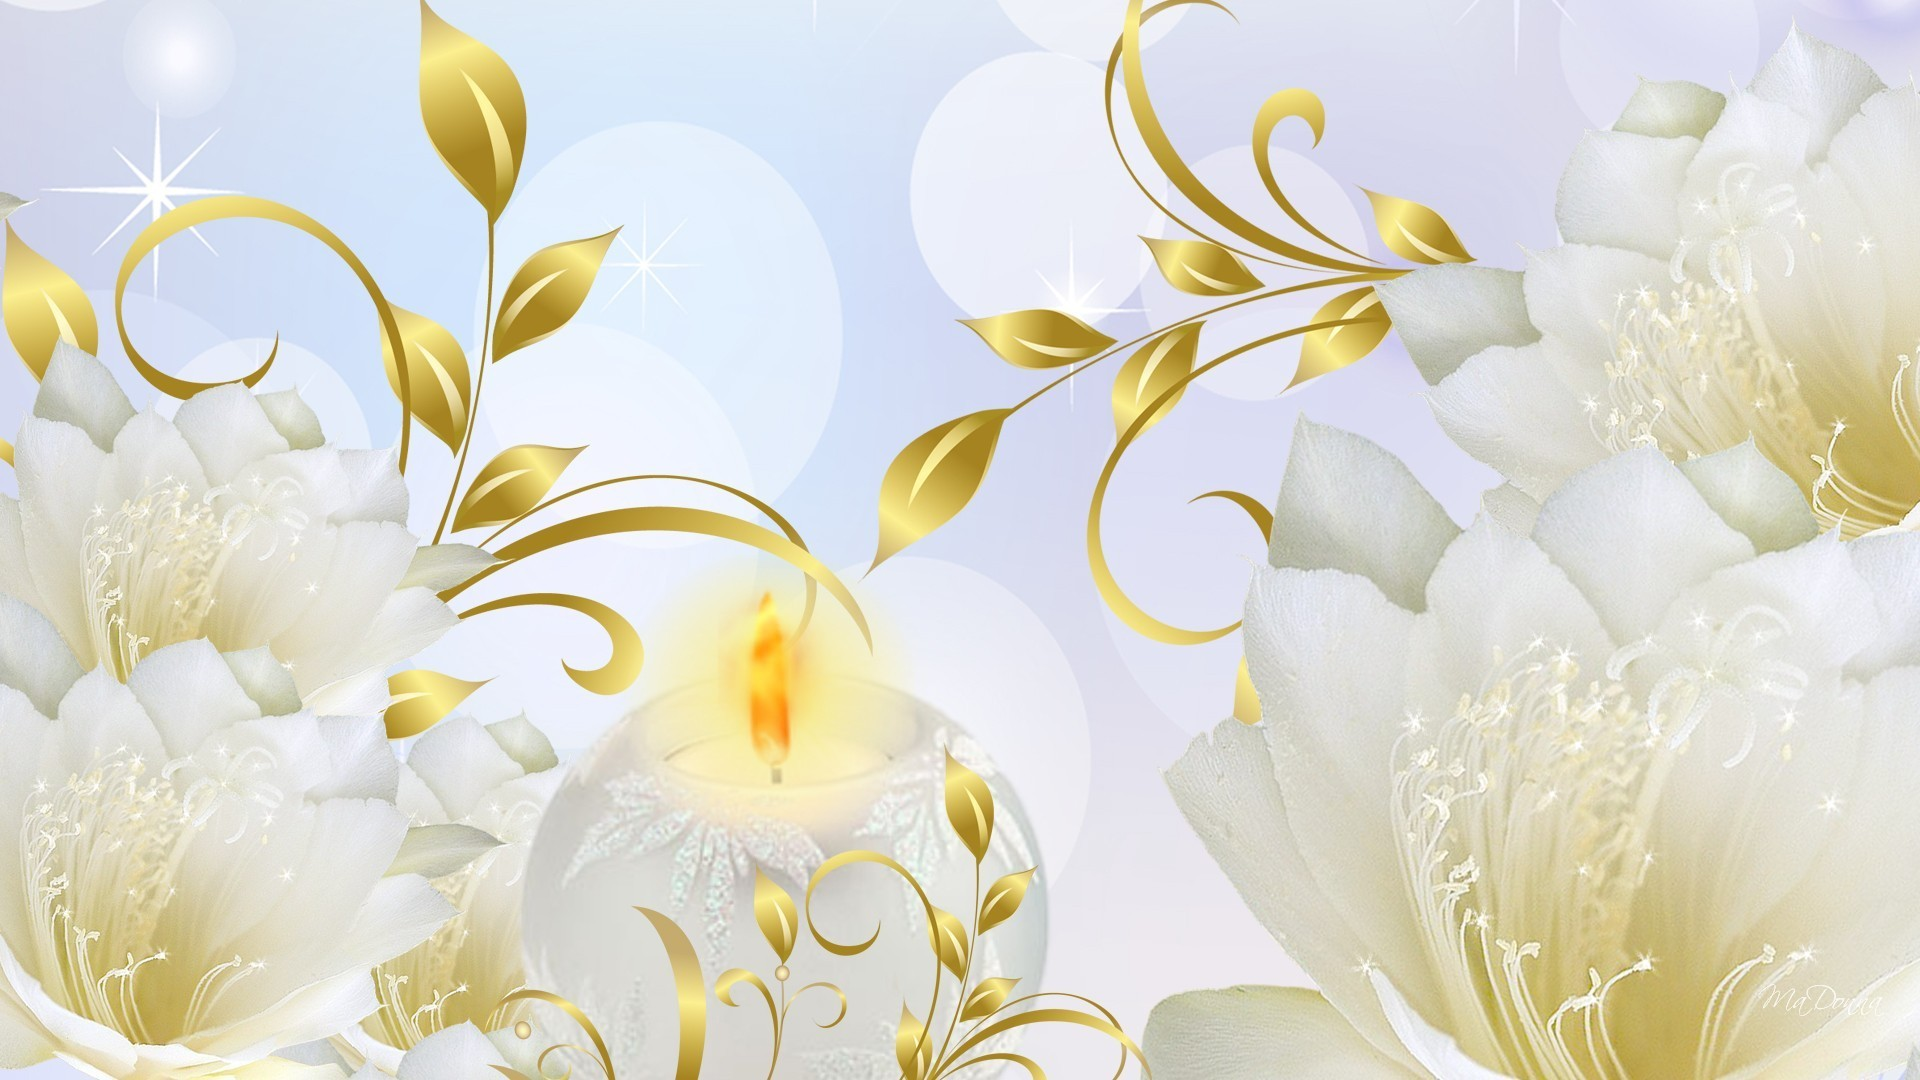 Gold And White Desktop Wallpaper 50 Images